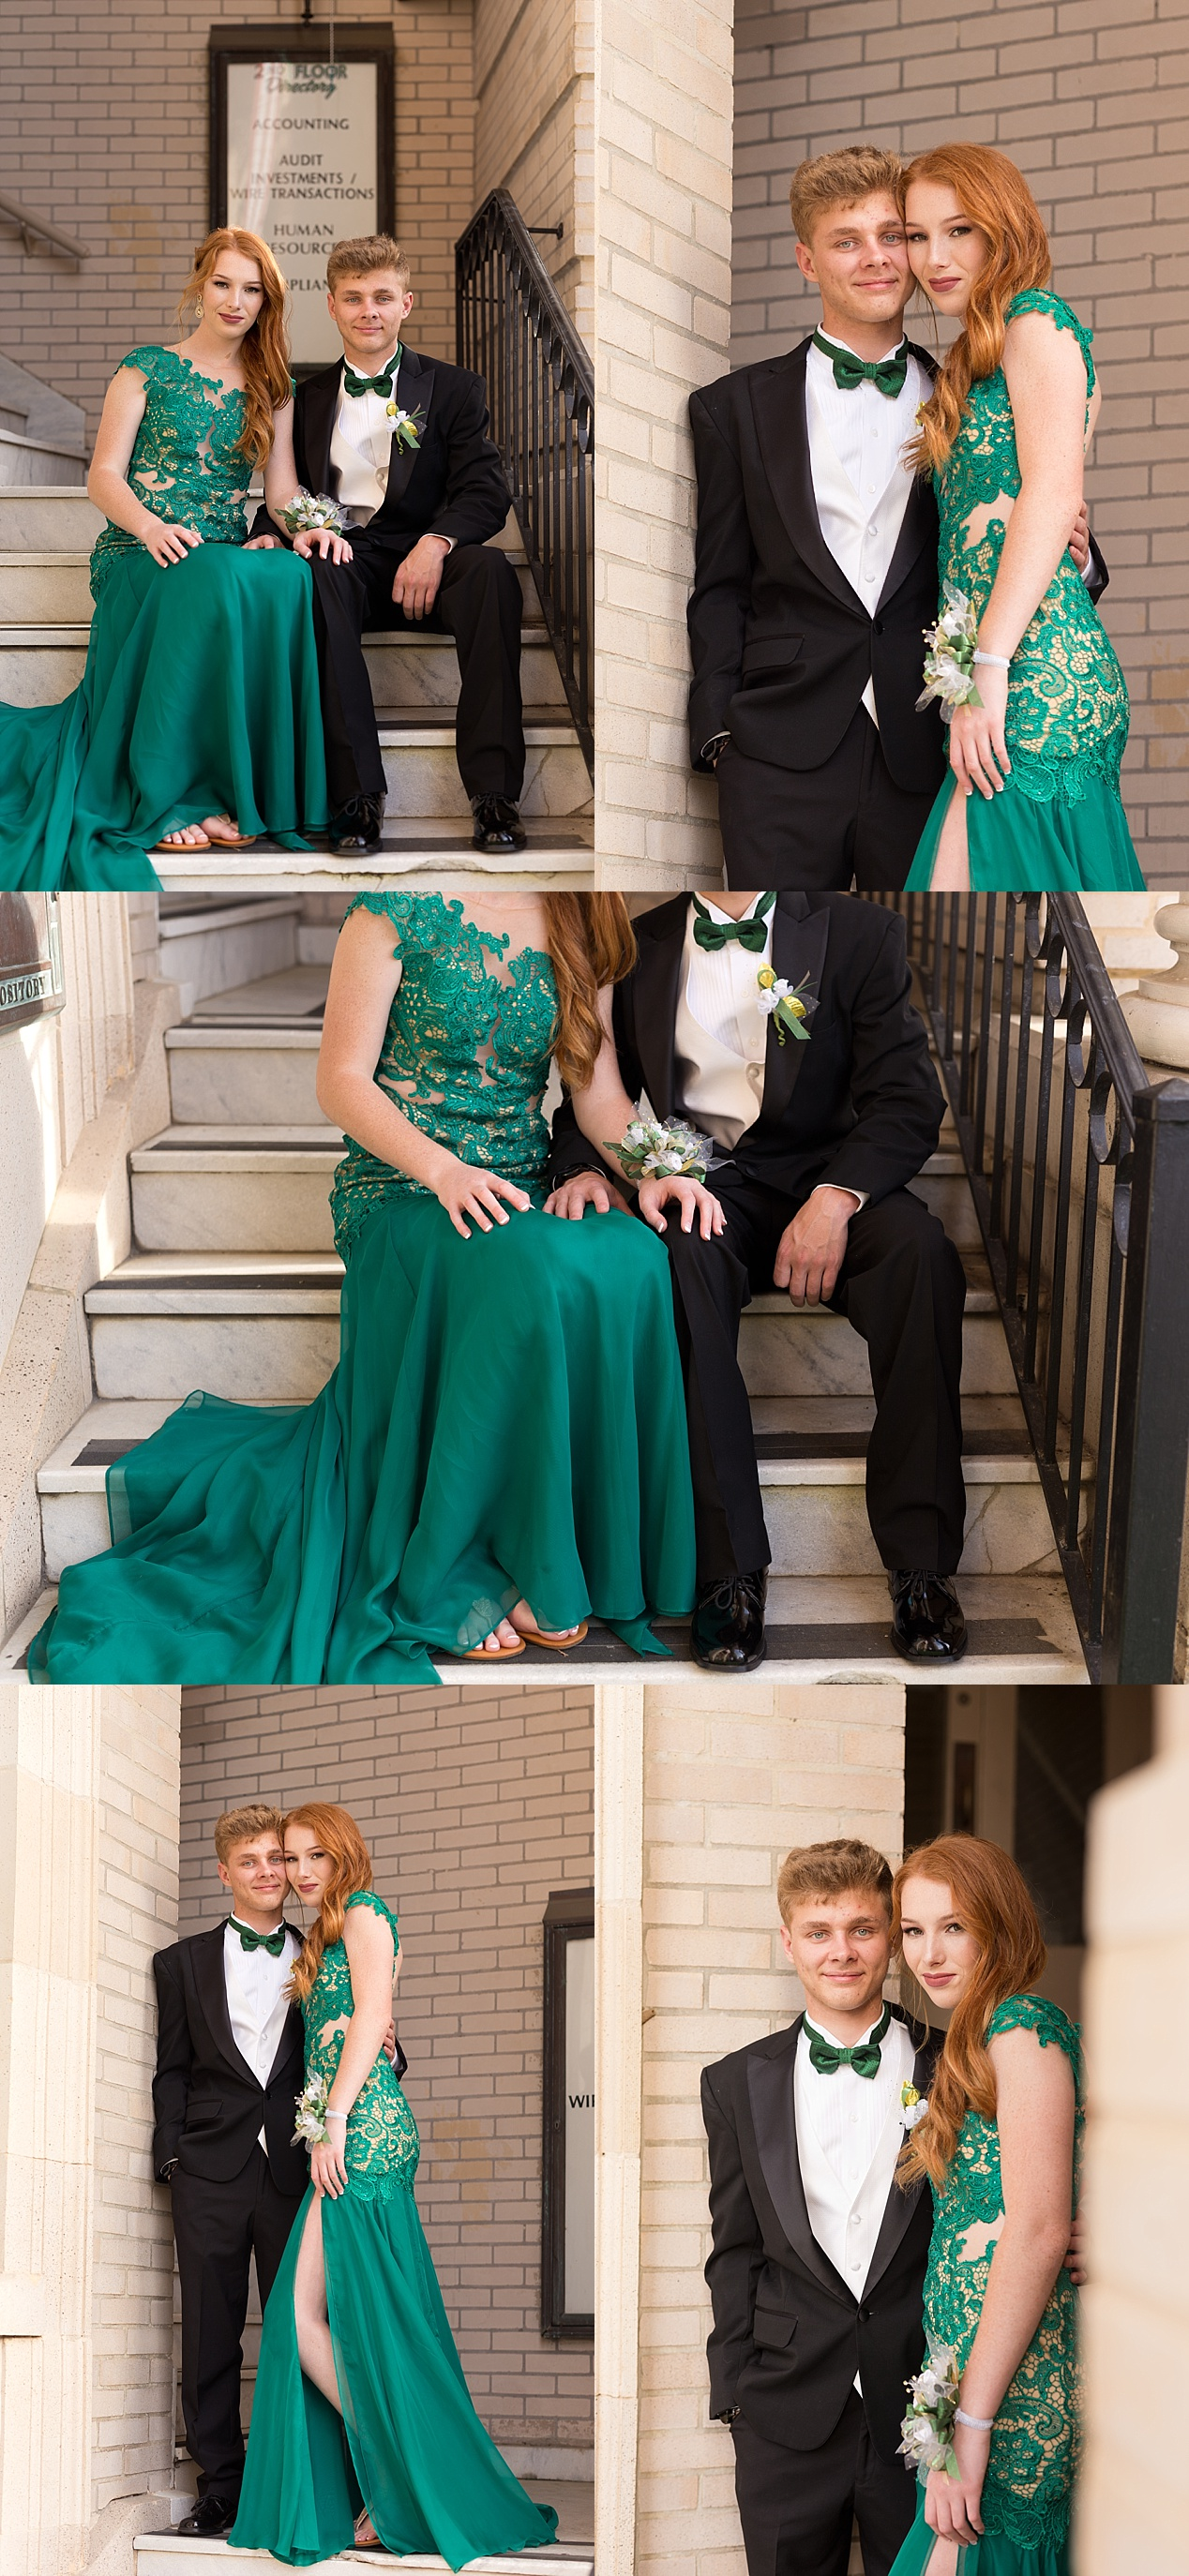 Prom Photos in Biloxi, Mississippi